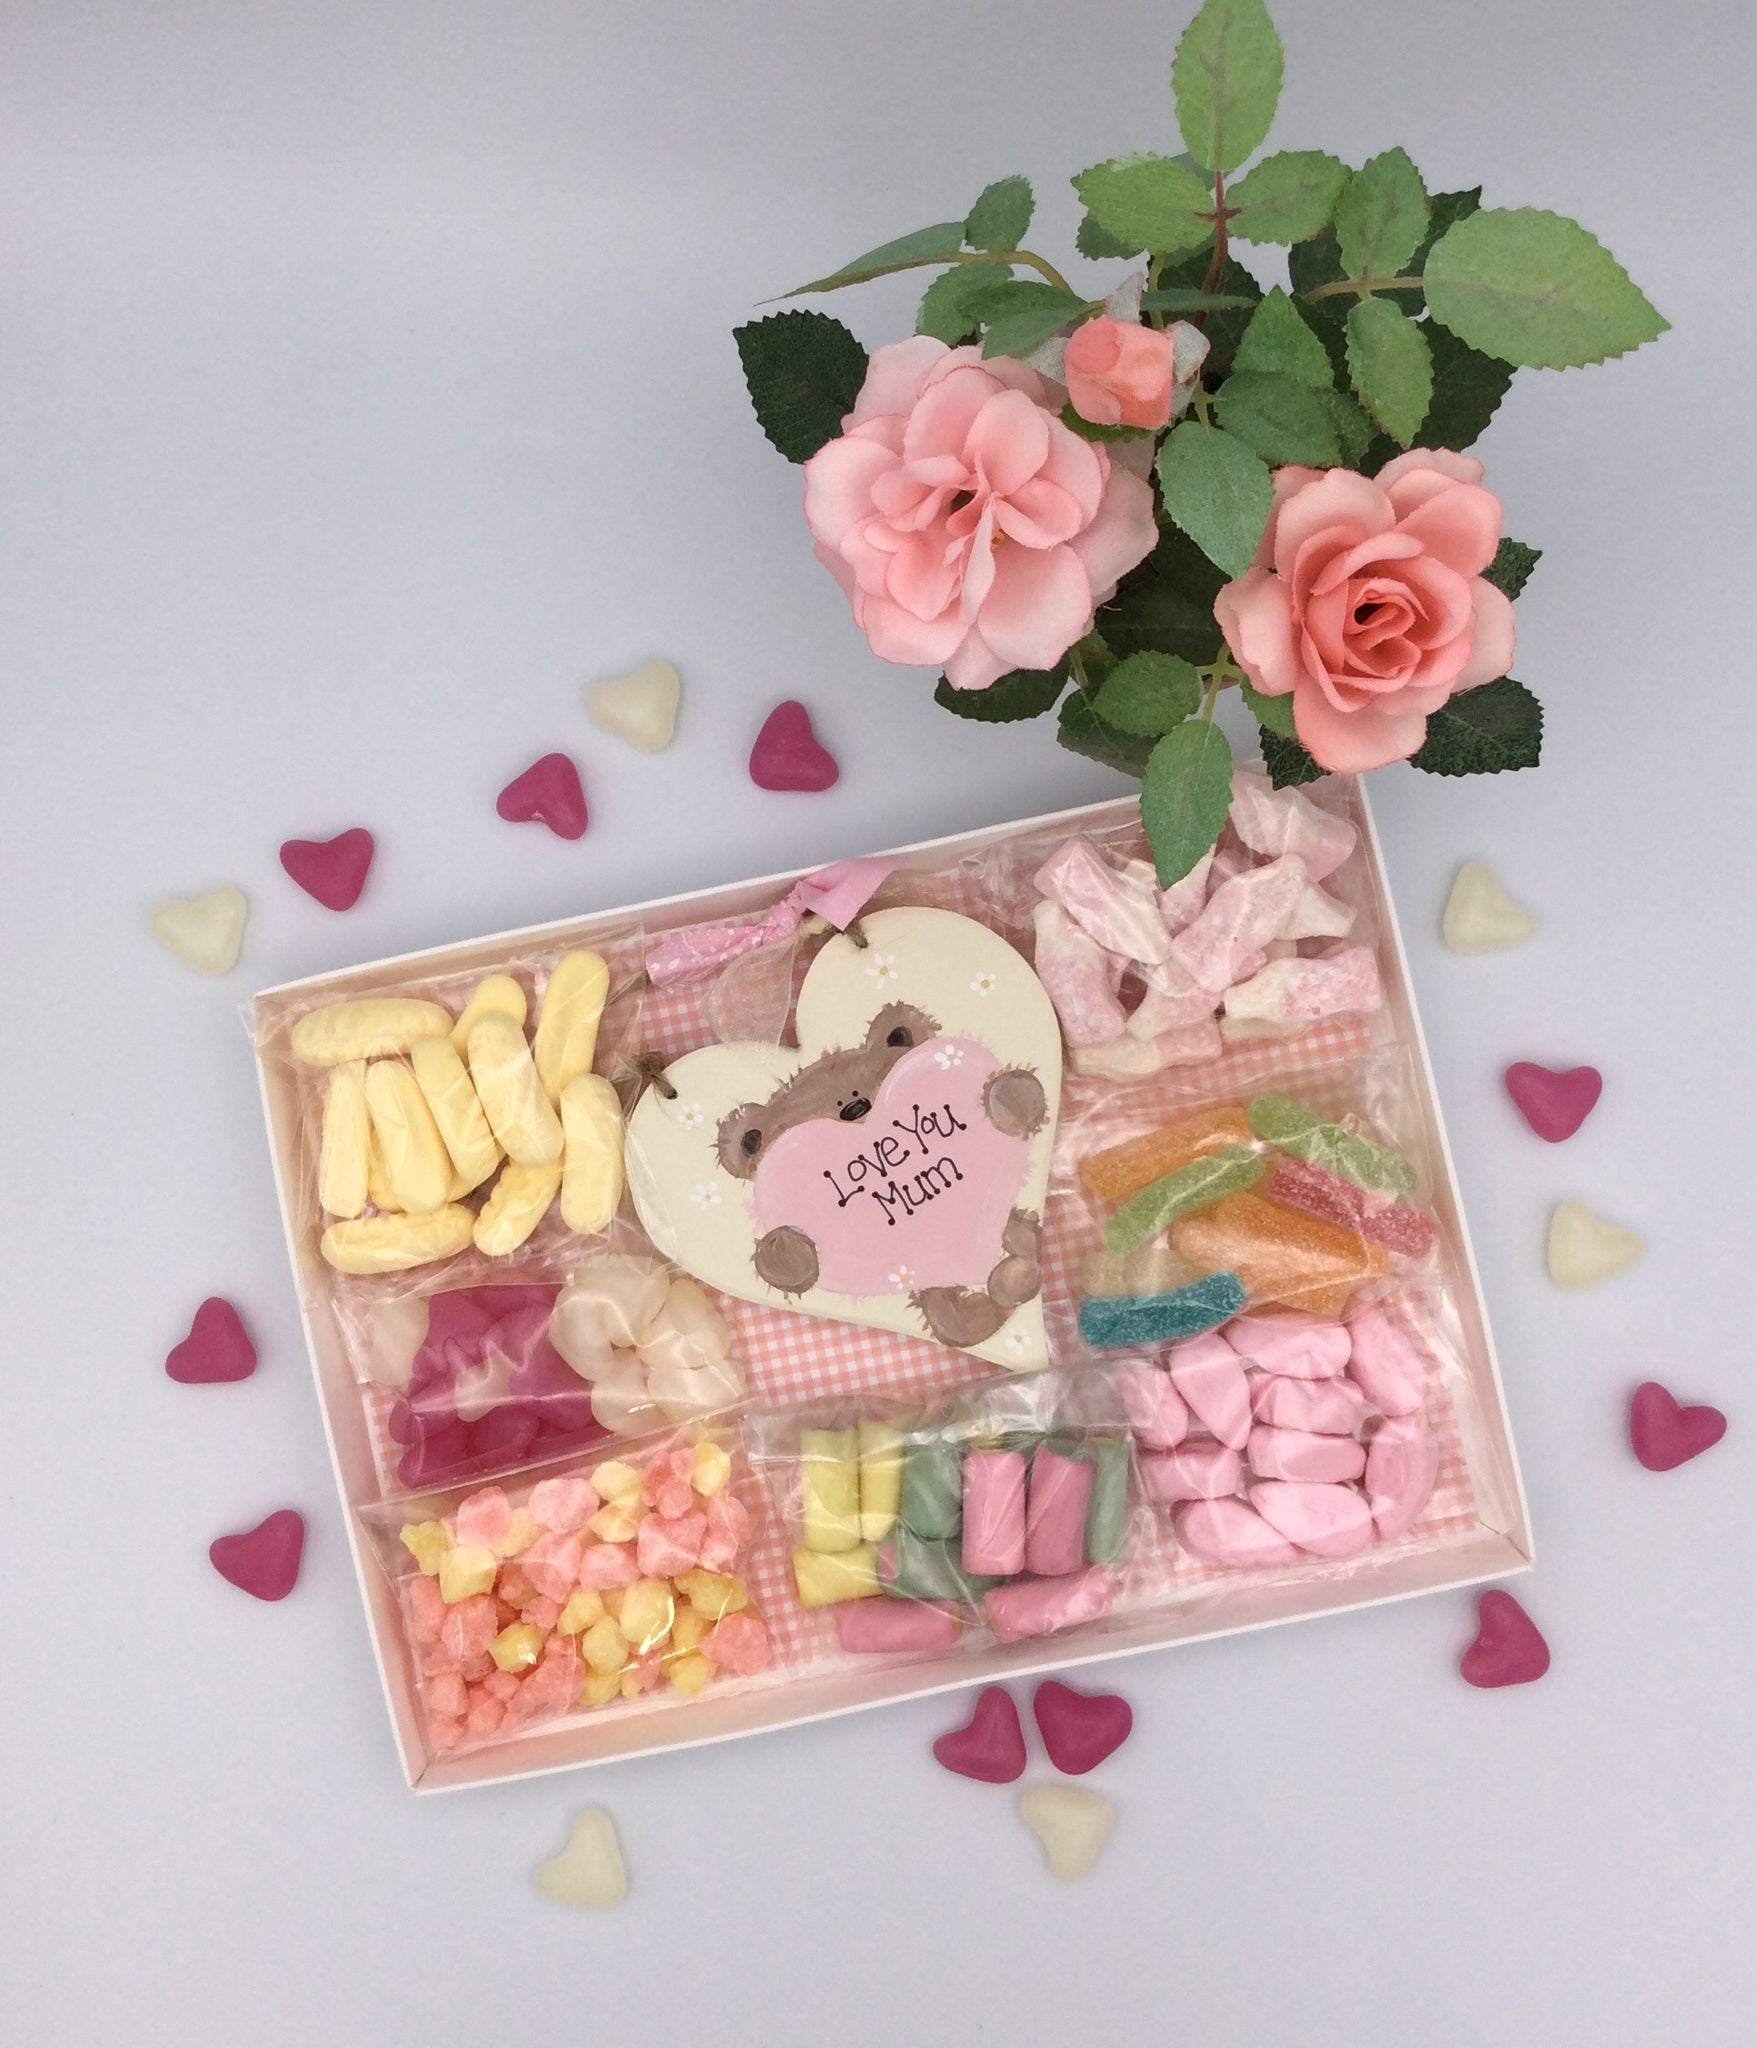 Mothers Day sweetie gift box